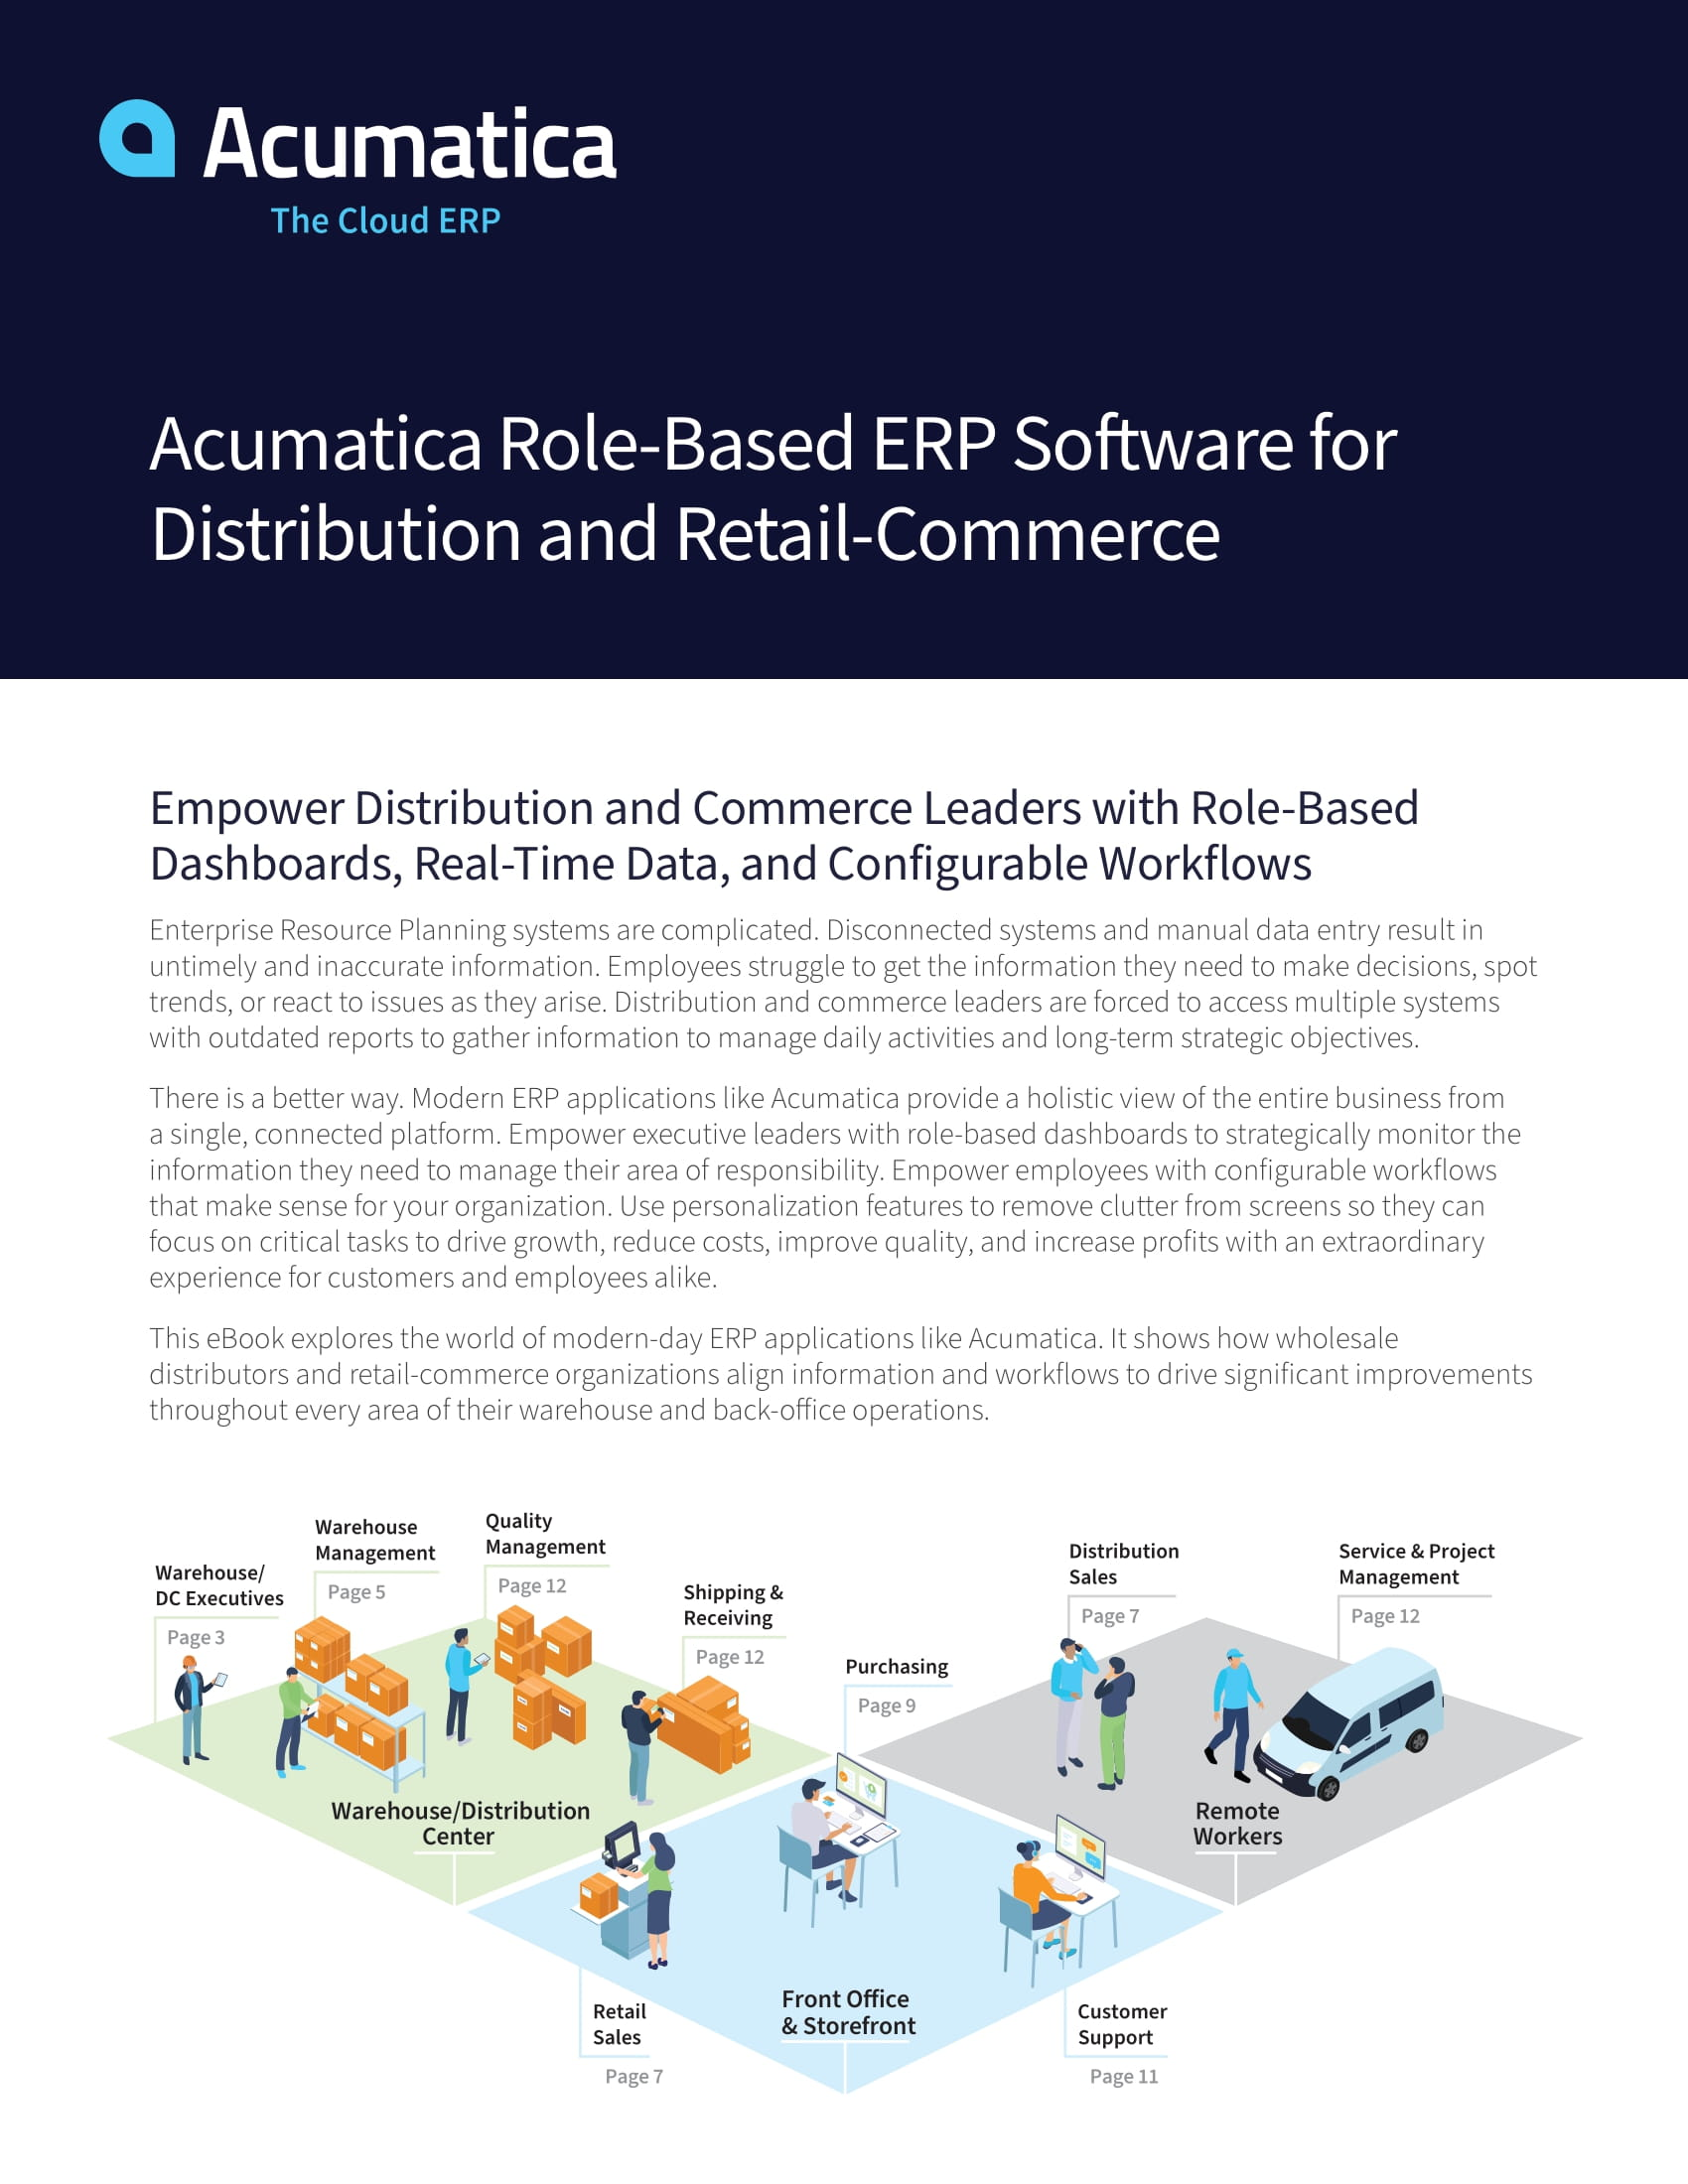 Choose a Modern ERP Software for Wholesale Distribution and Retail-Commerce